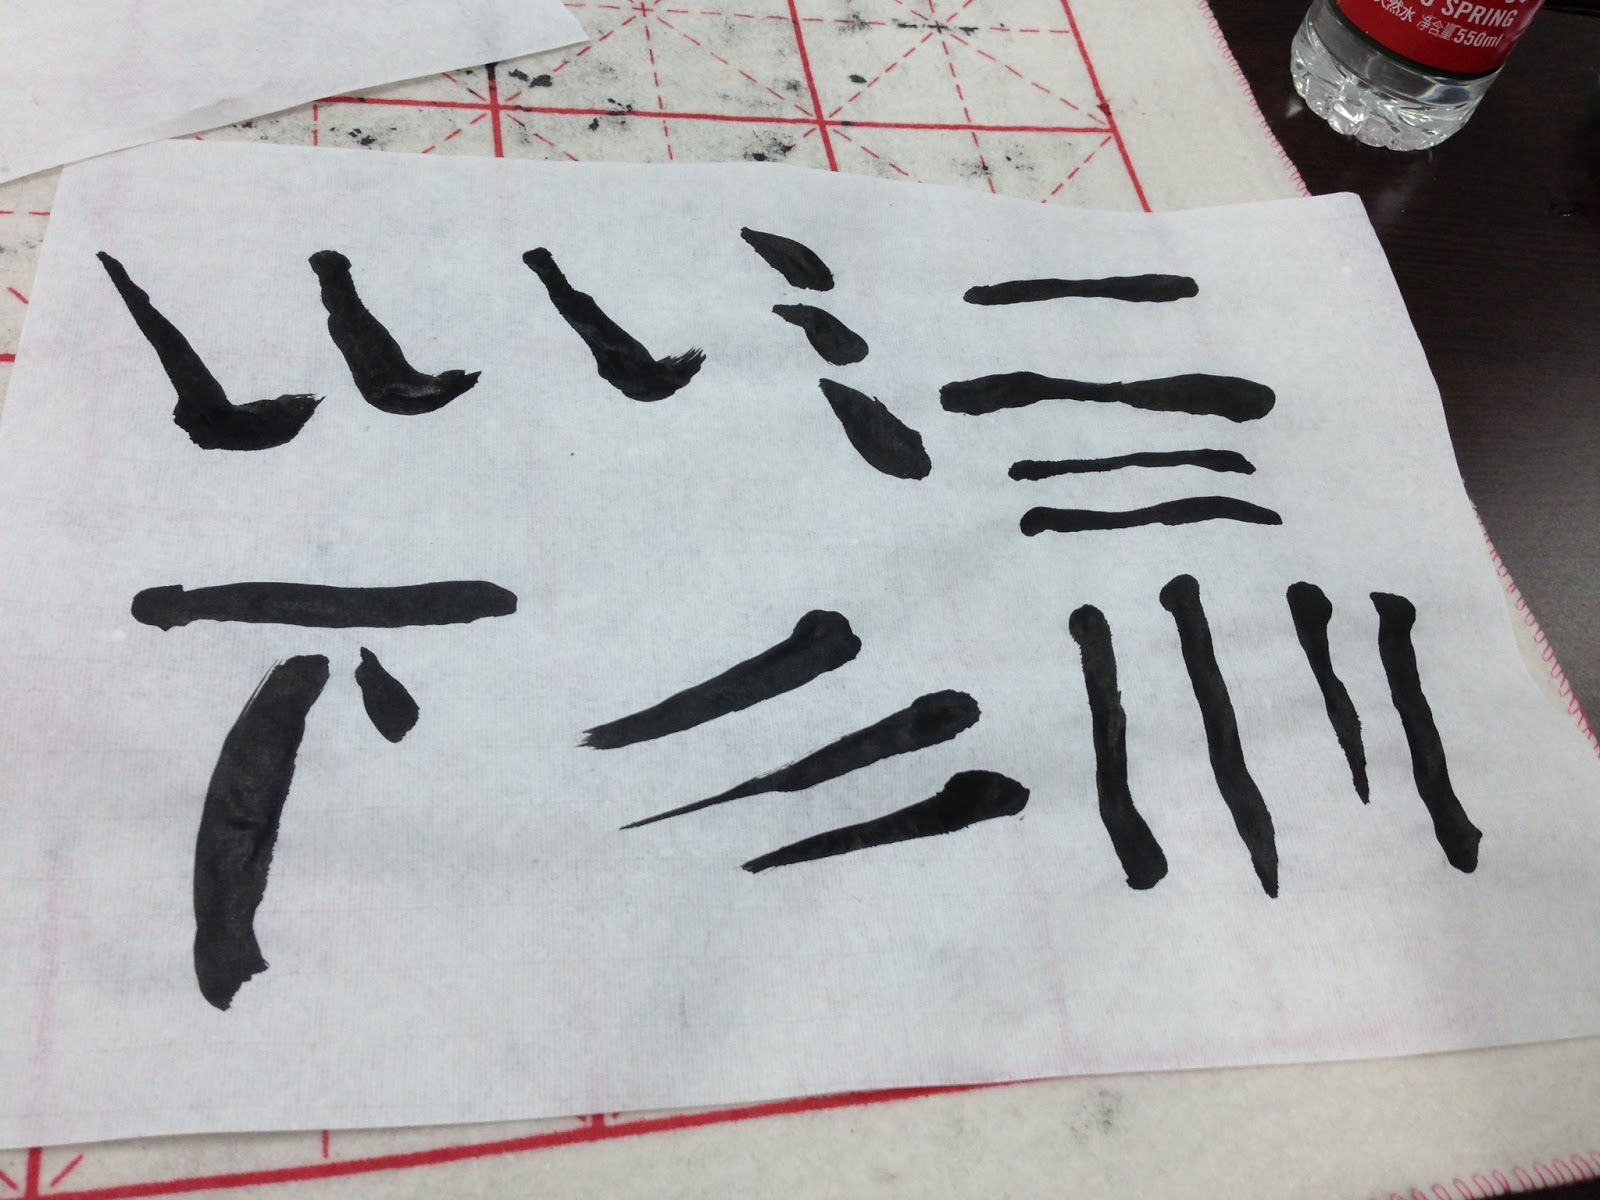 Calligraphy Lesson in Beijing, China organised by CRCC Asia international internship